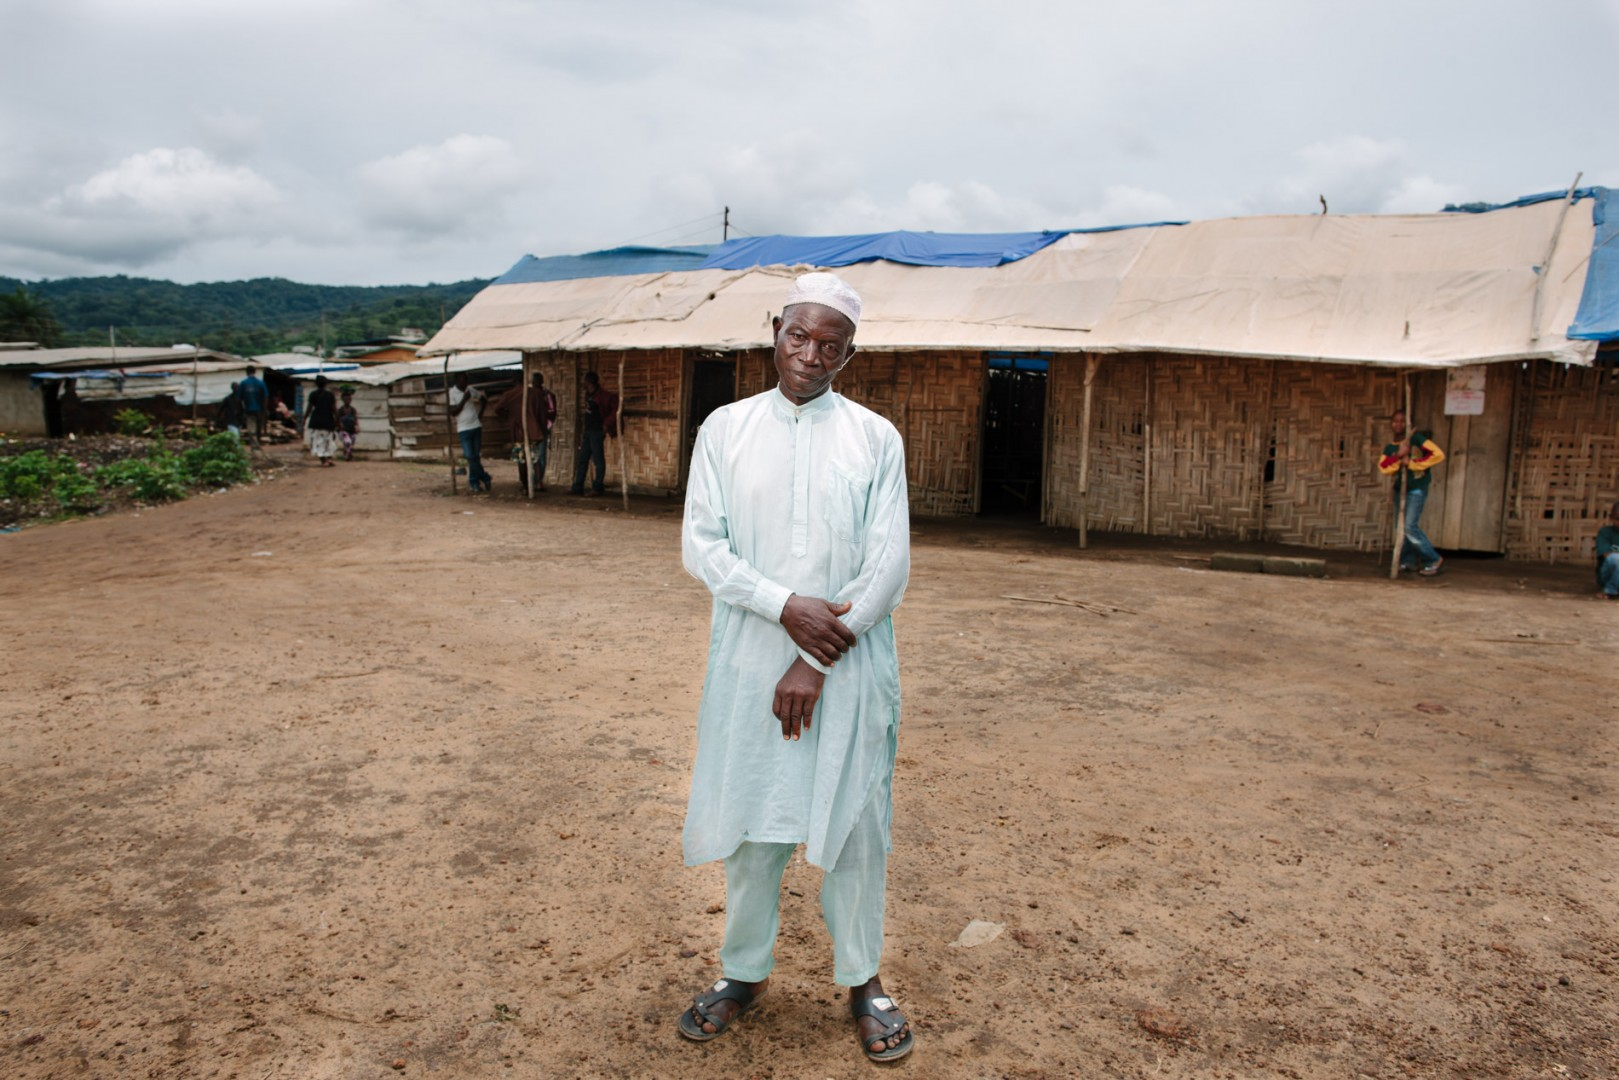 Chief Ansumana Sheriff, Chief of the area where the current Swawou school is, which can be seen in the background.